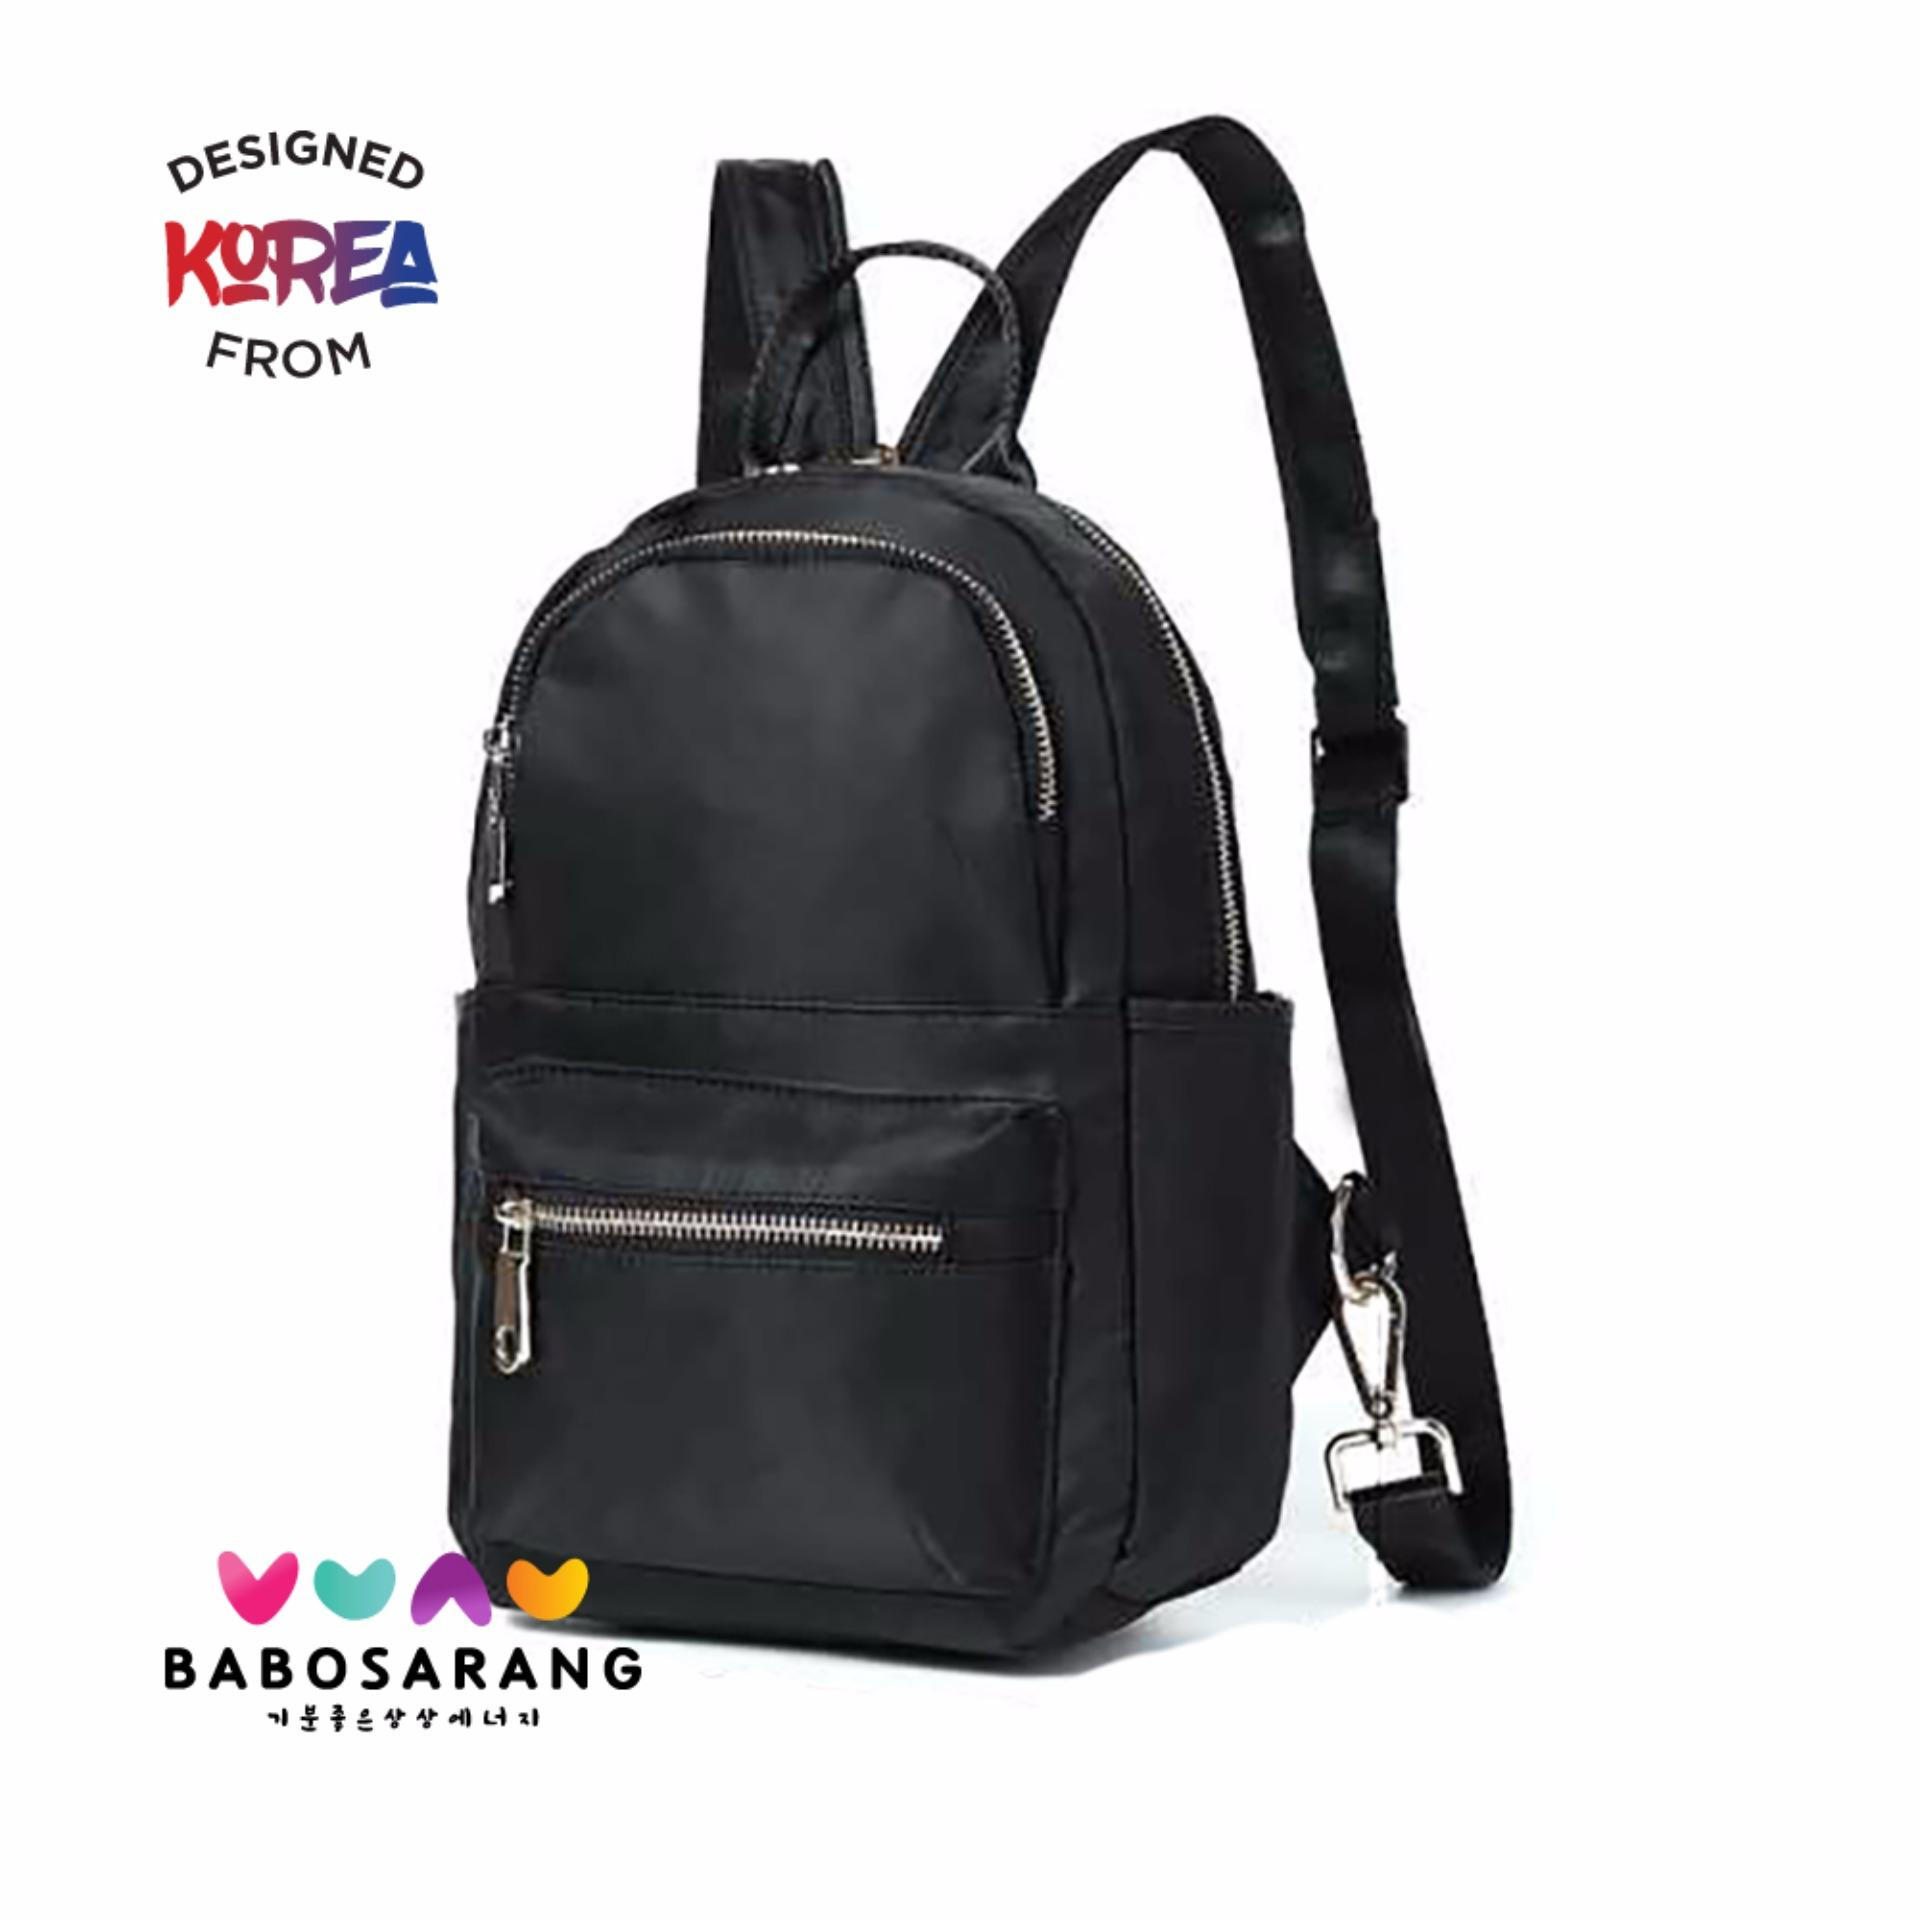 Spesifikasi Korean Fashion Style Babosarang Tas Ransel Batam Wanita Backpack Korea Model Fashion Gothic Style Bs2 Online